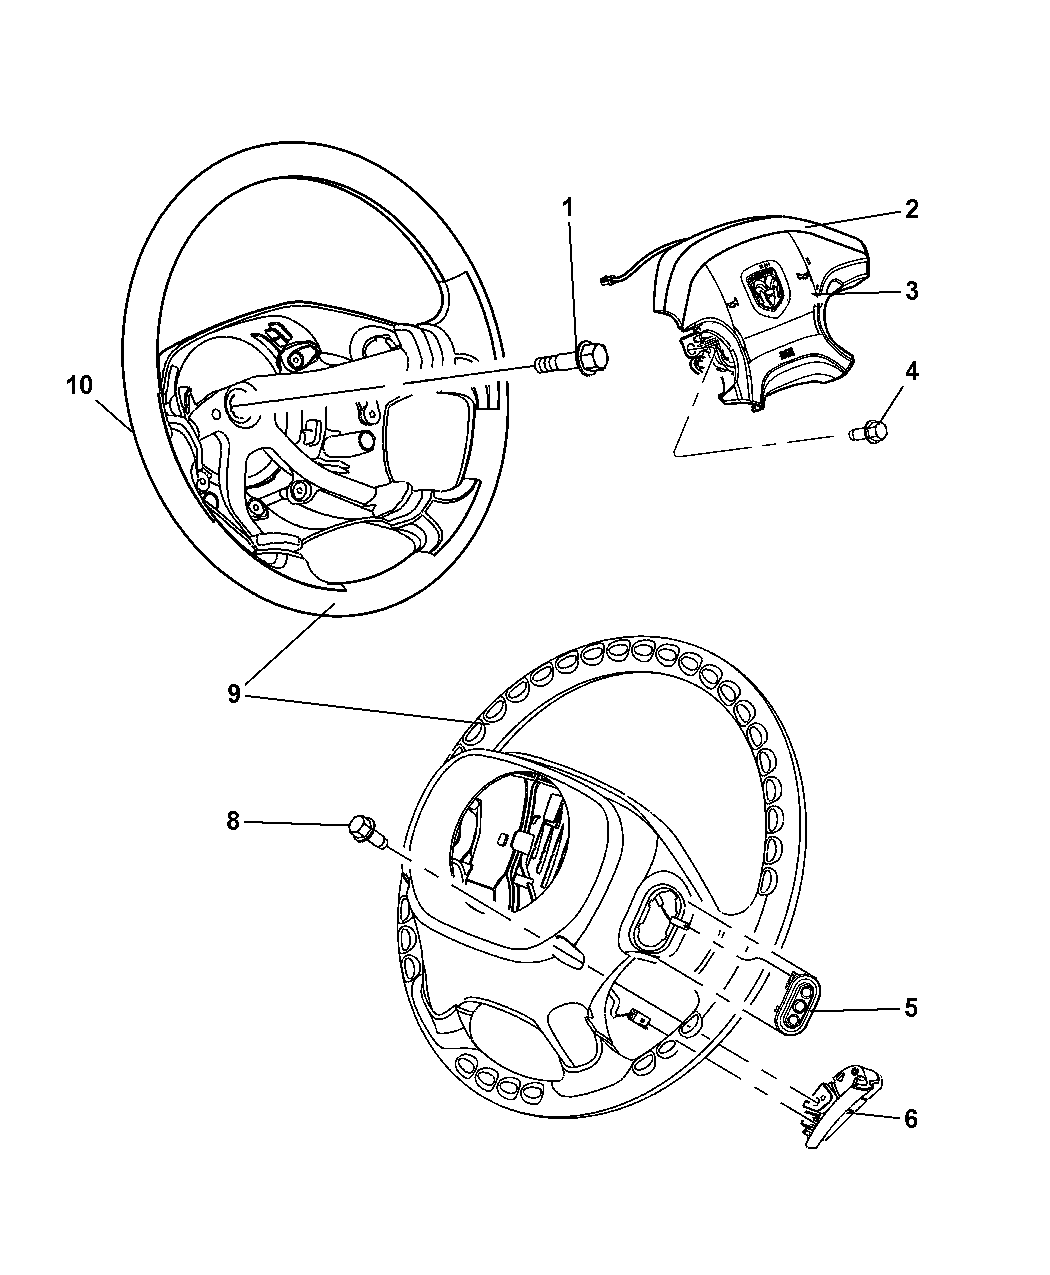 YP211DVAB  Genuine Mopar WHEELSTEERING